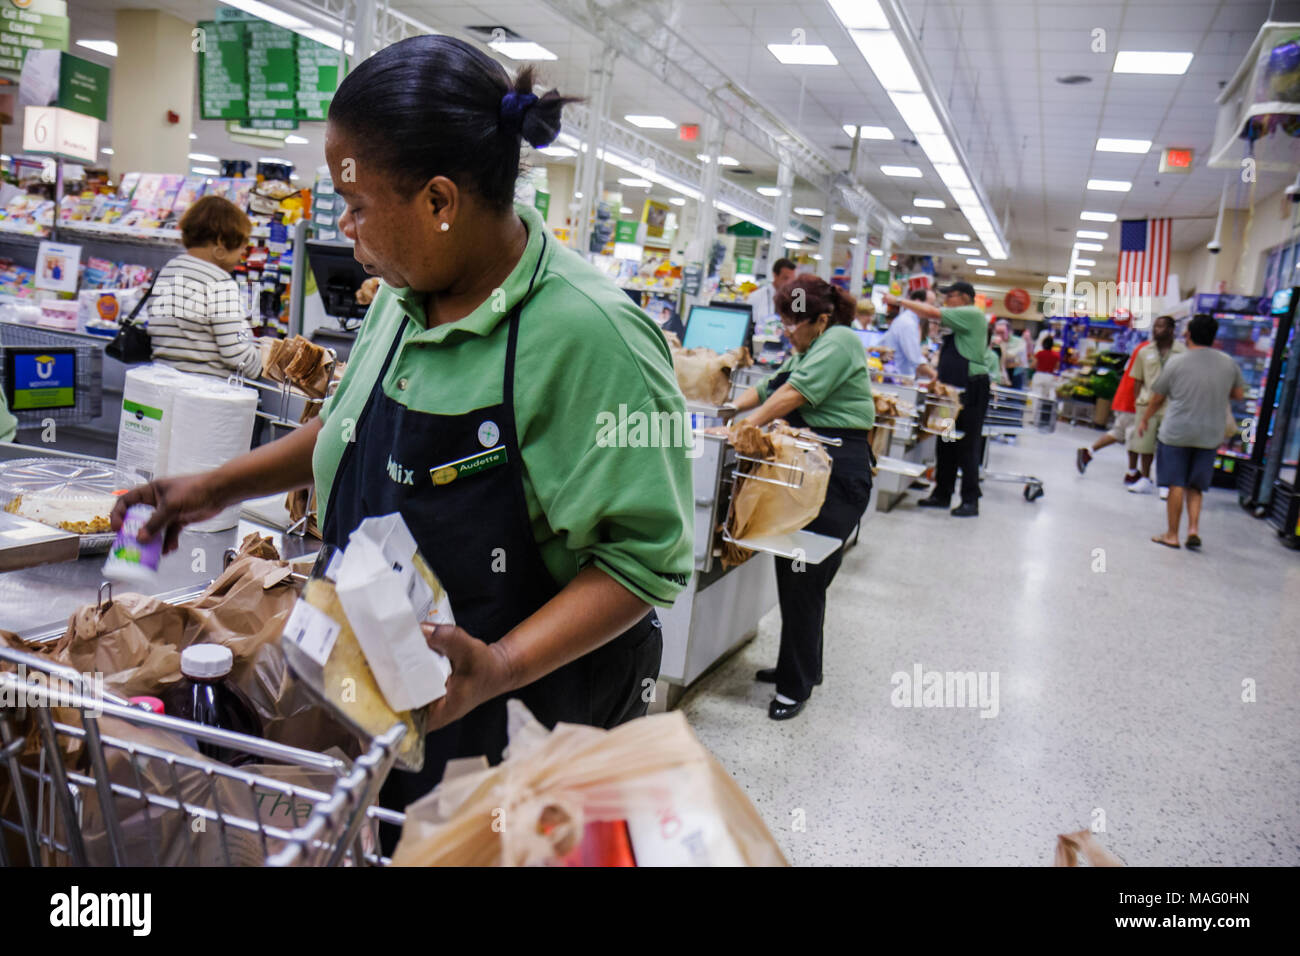 Miami Beach Florida Publix Super Market supermarket grocery store business shopping groceries checkout lane Black woman cashier - Stock Image